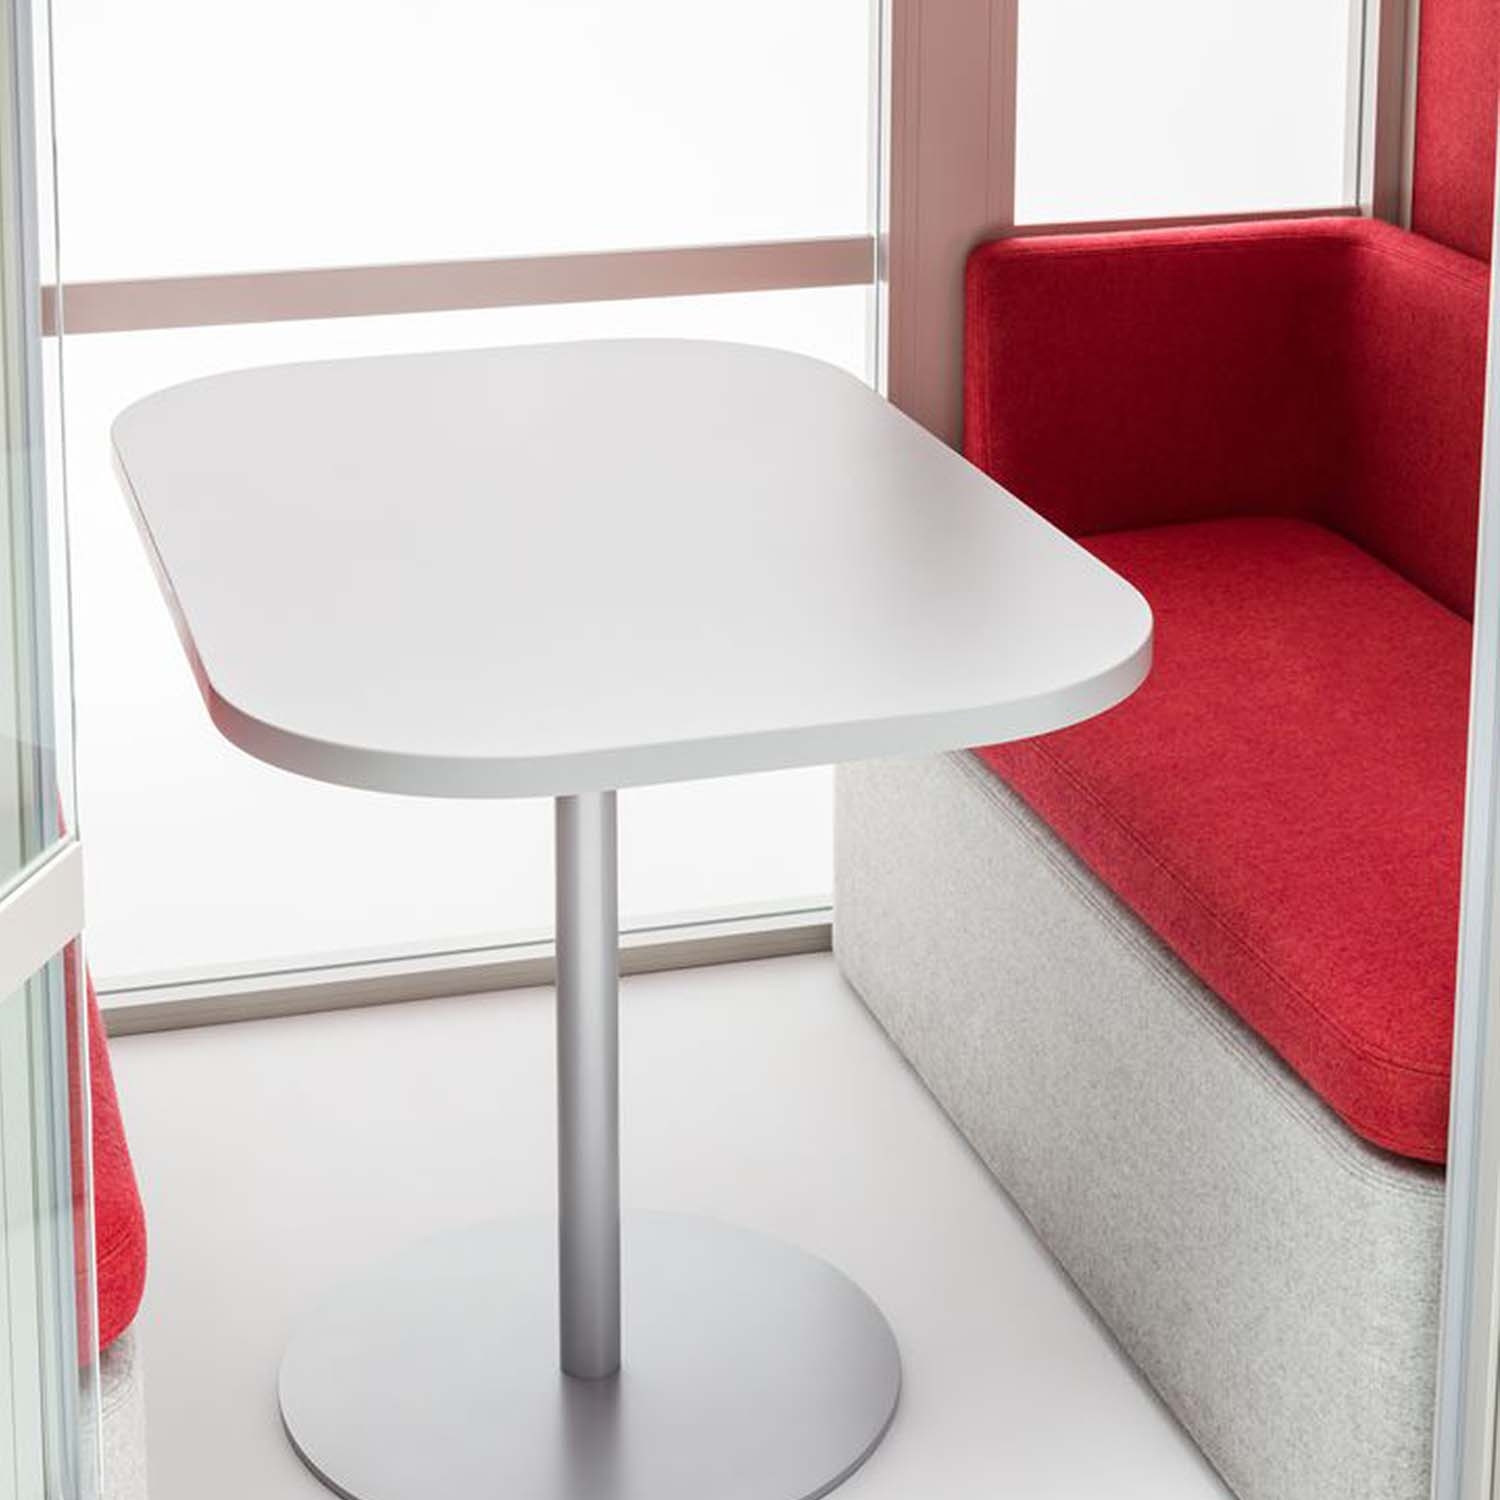 Hako Acoustic Lounge Pod Interior